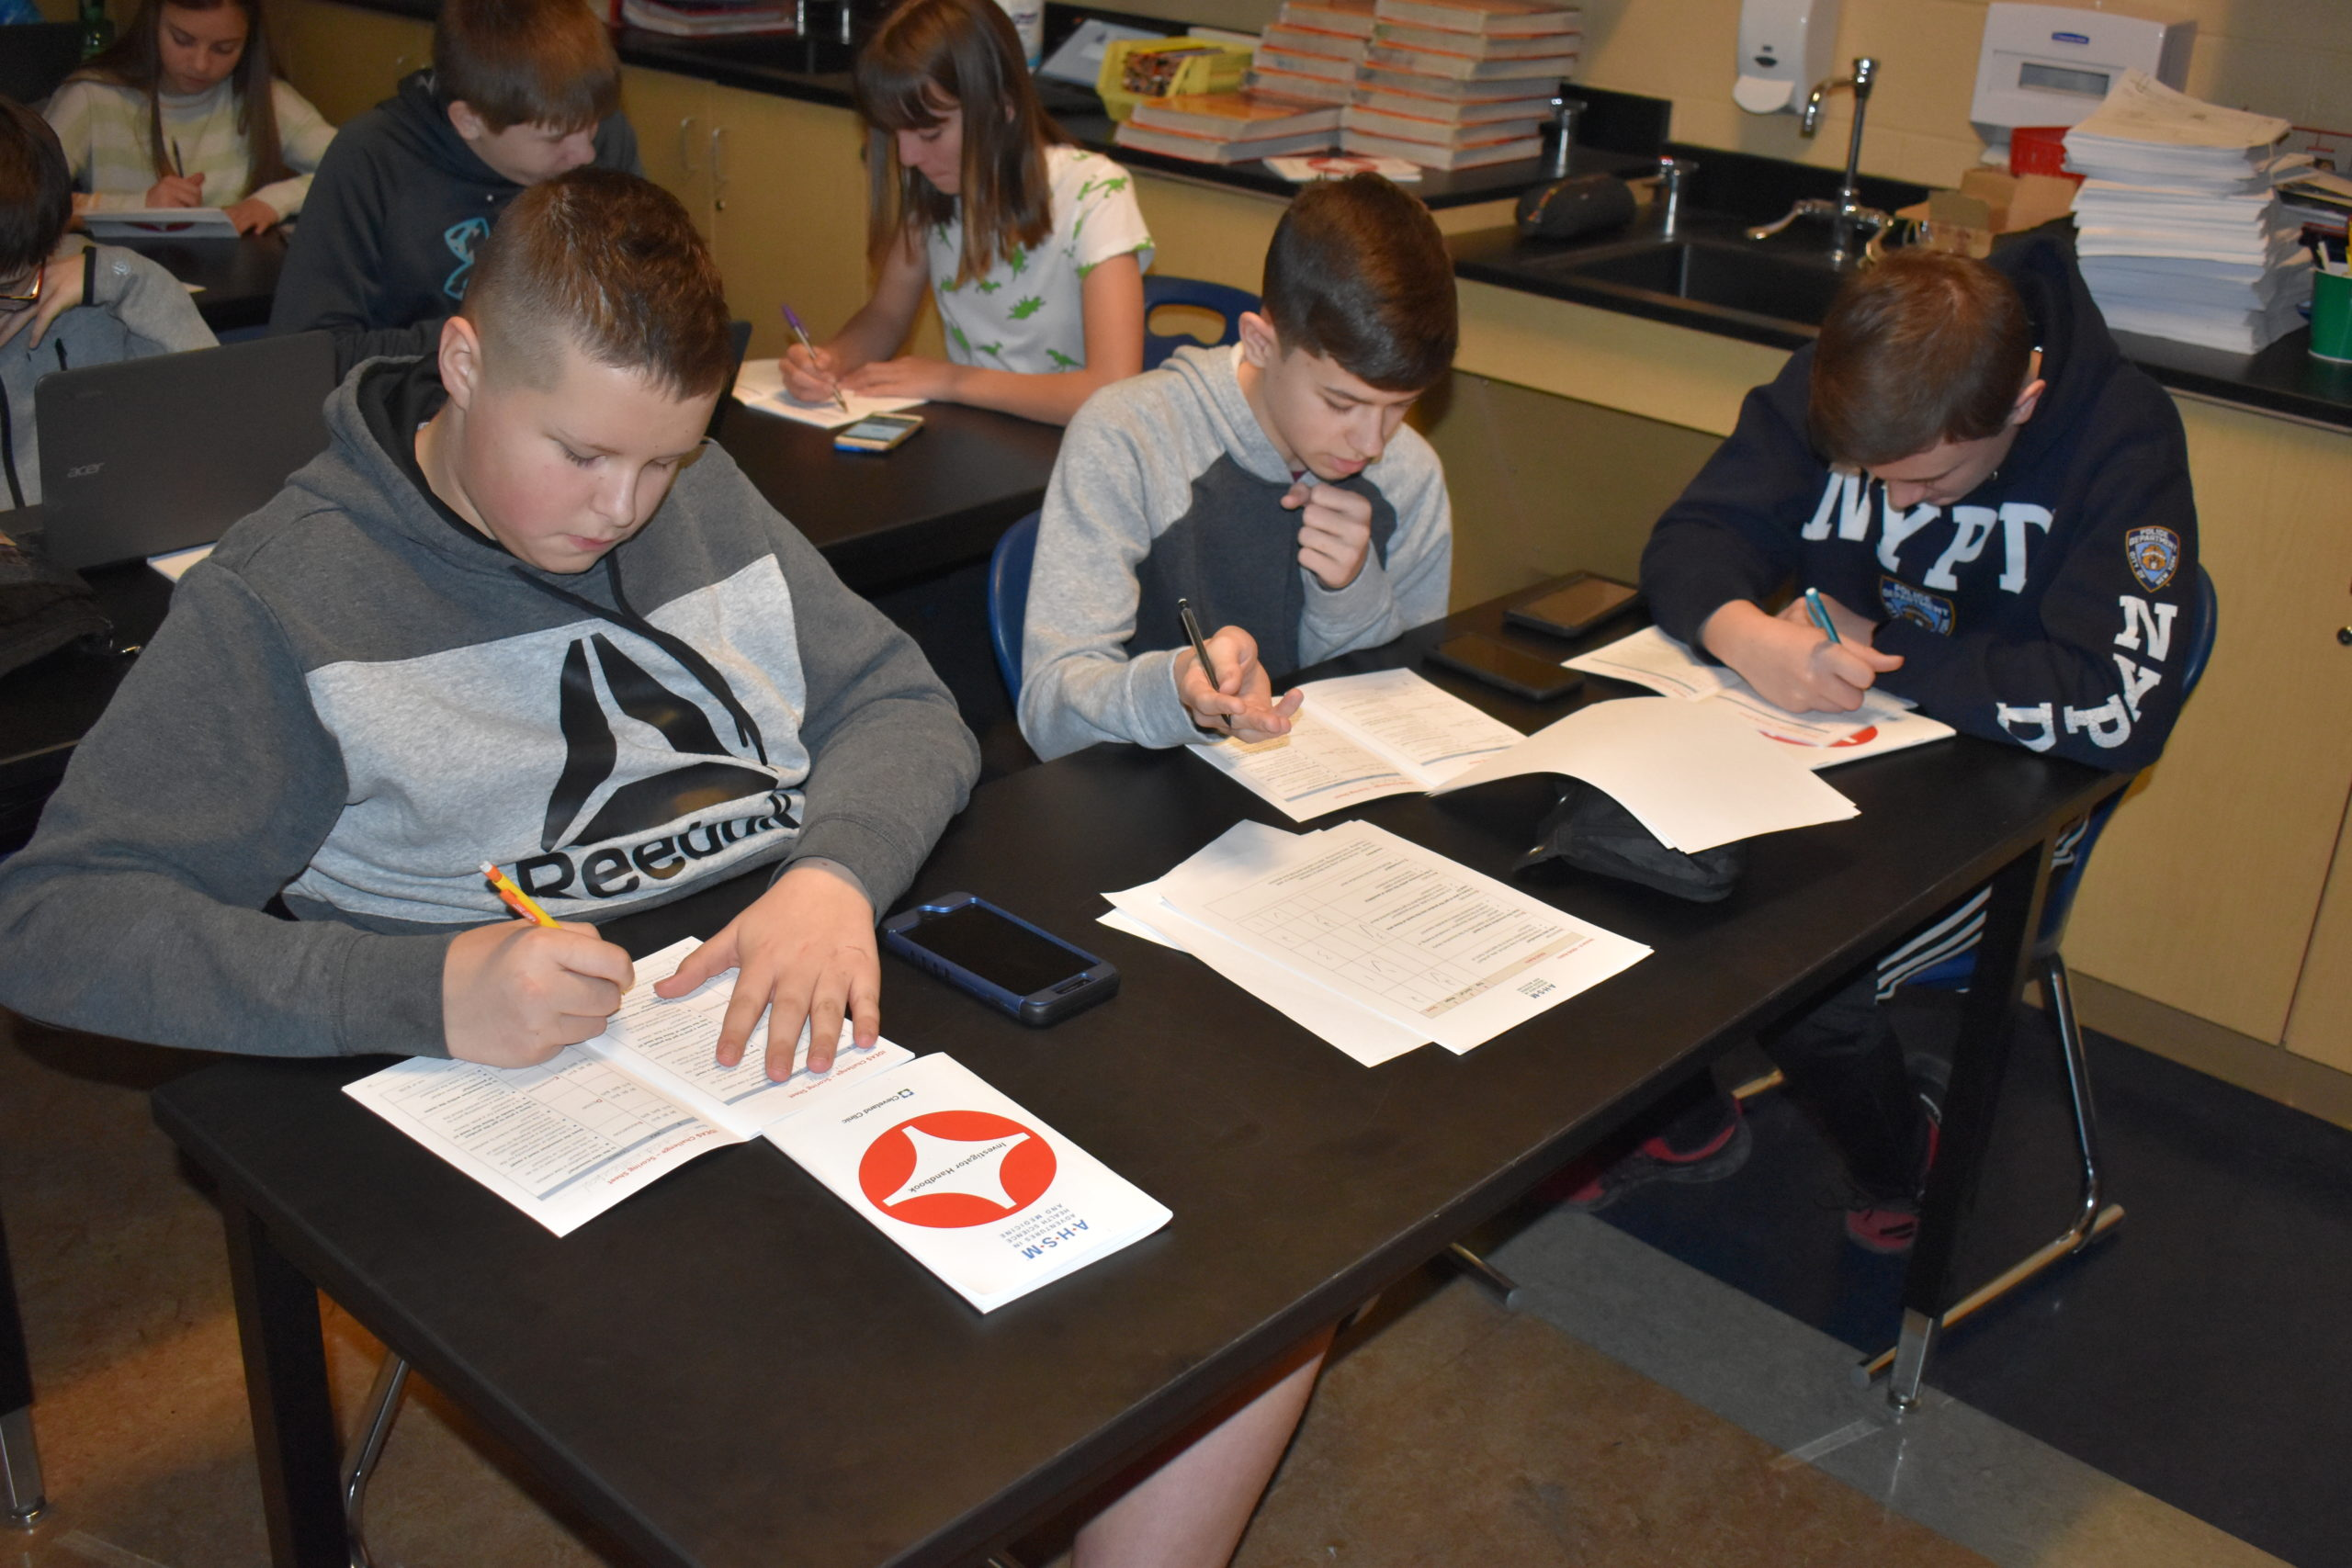 Brookfield eighth-grade students, from left, Hayden Hoskin, Anthony Rowe and Dallas Crozier write in their workbooks for Adventures in Health Science and Medicine, a program by the Cleveland Clinic.